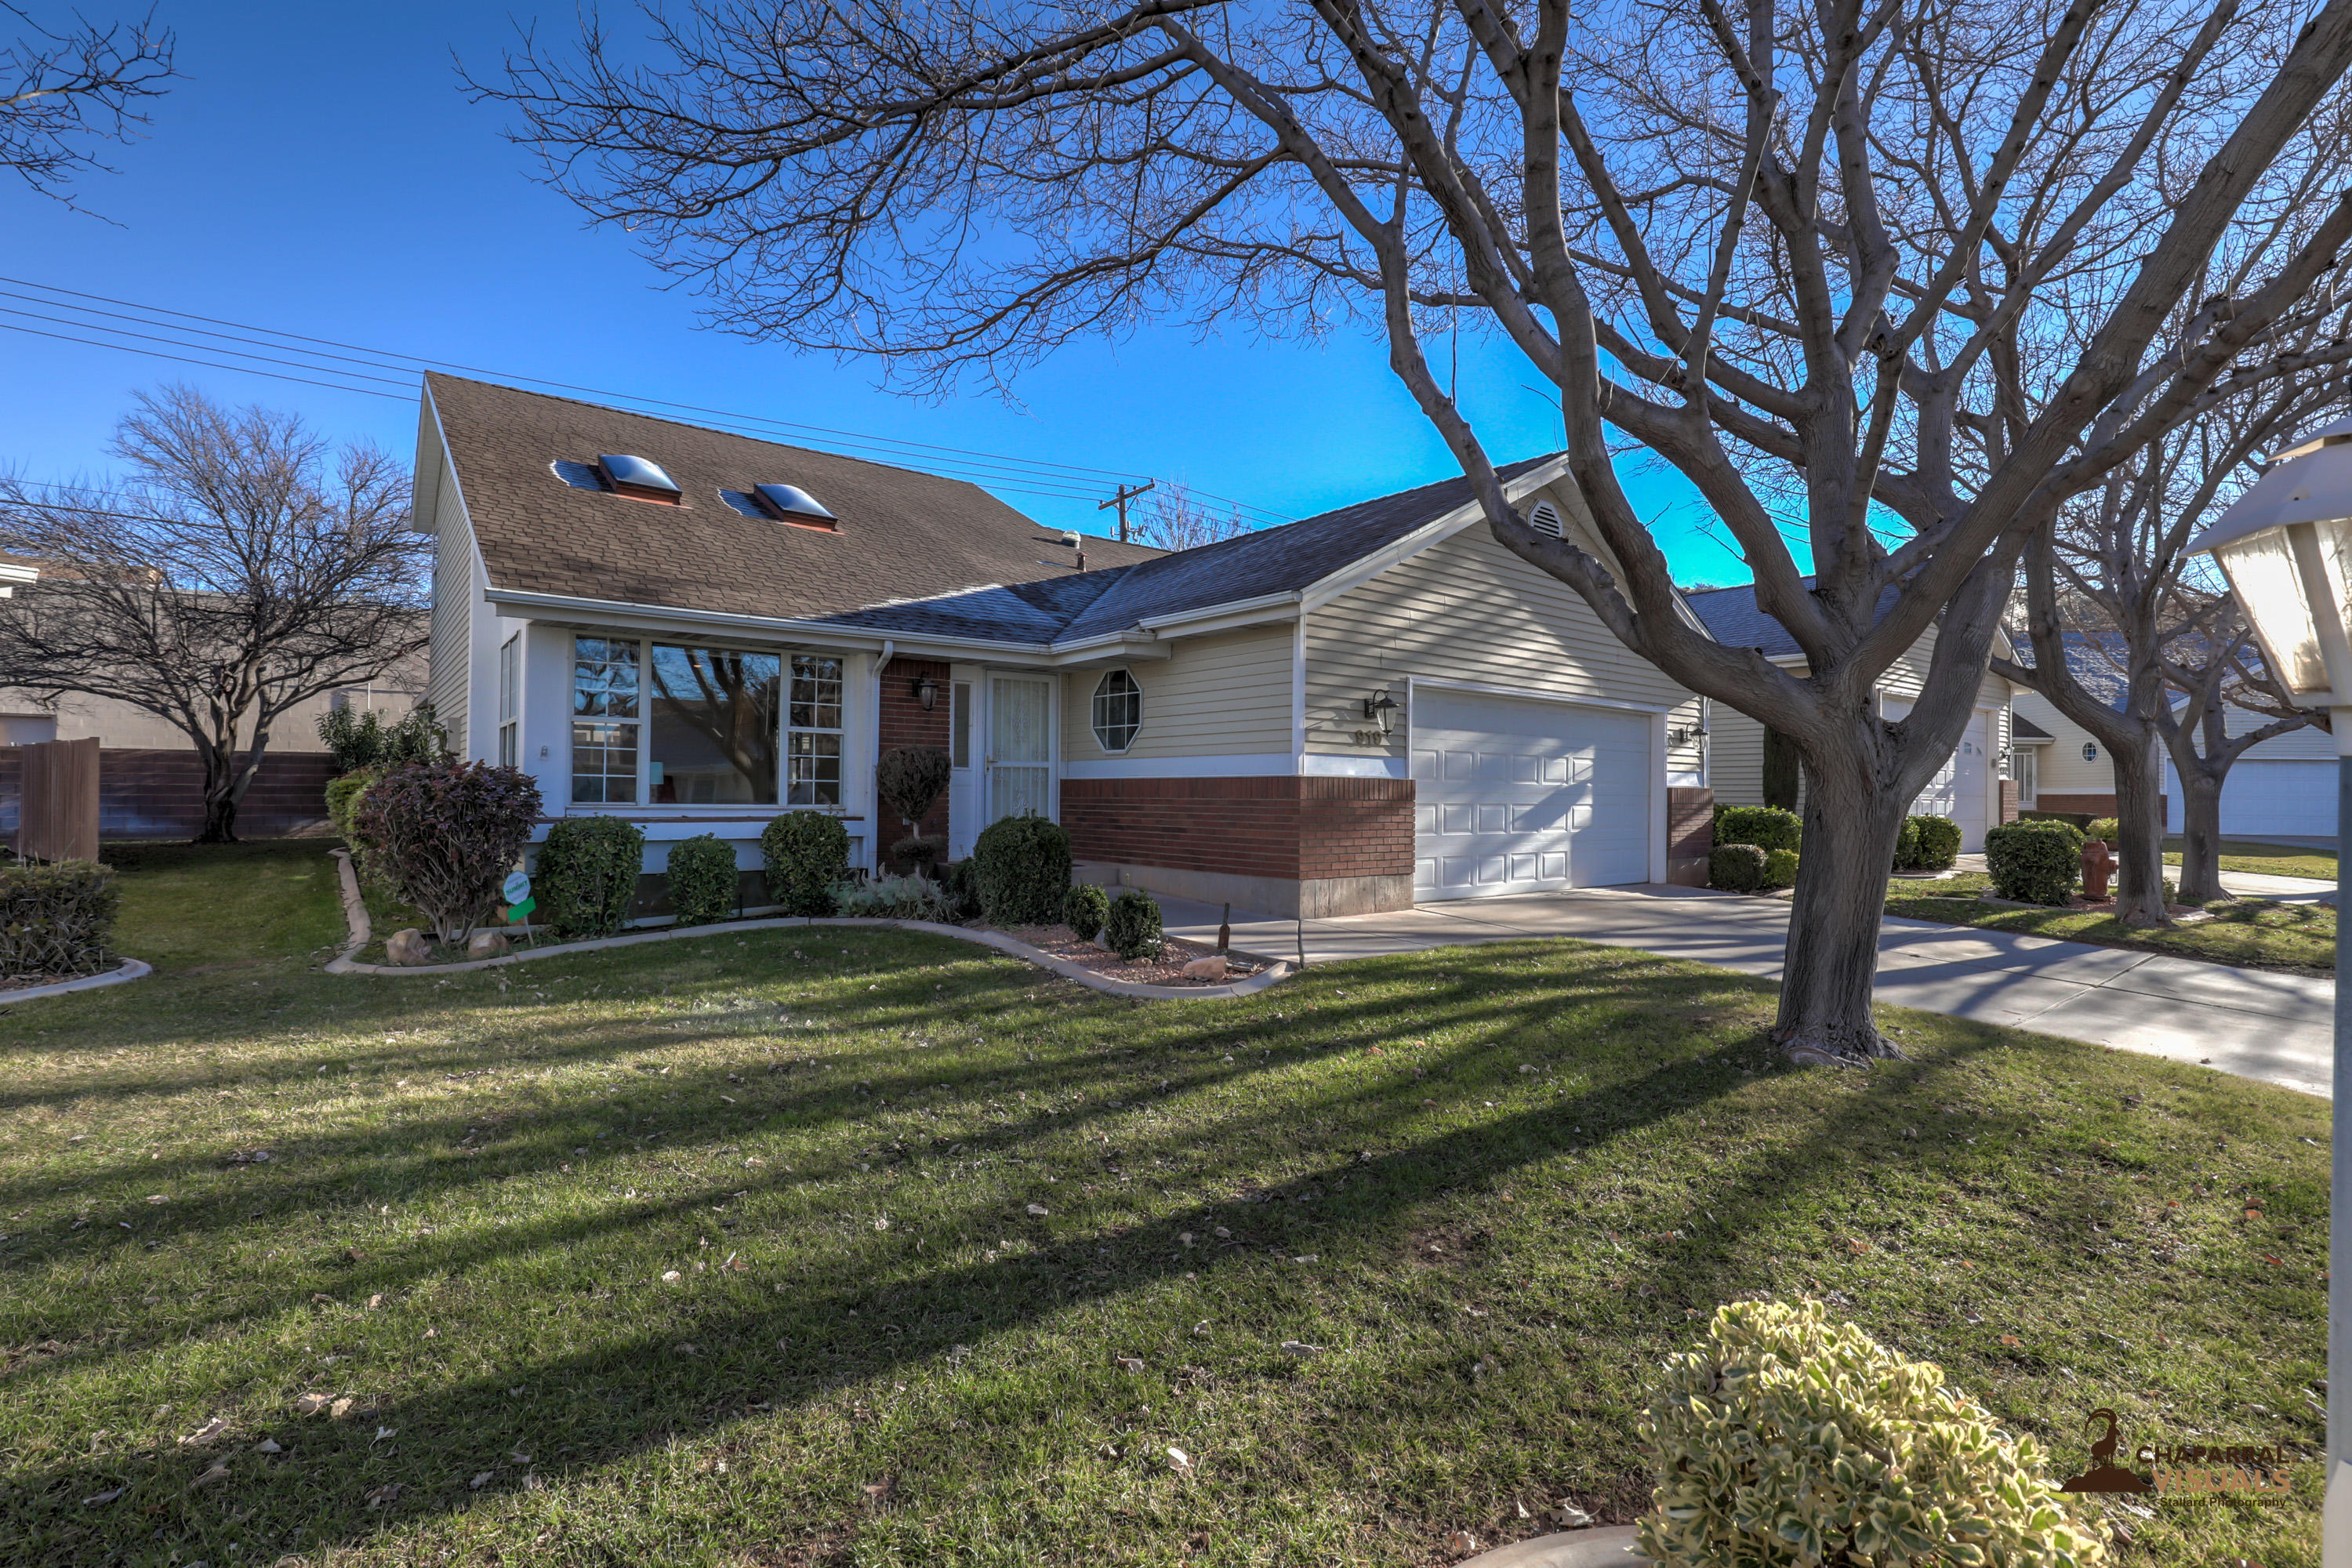 845 N Valley View Drive #919, St George in Washington County, UT 84770 Home for Sale